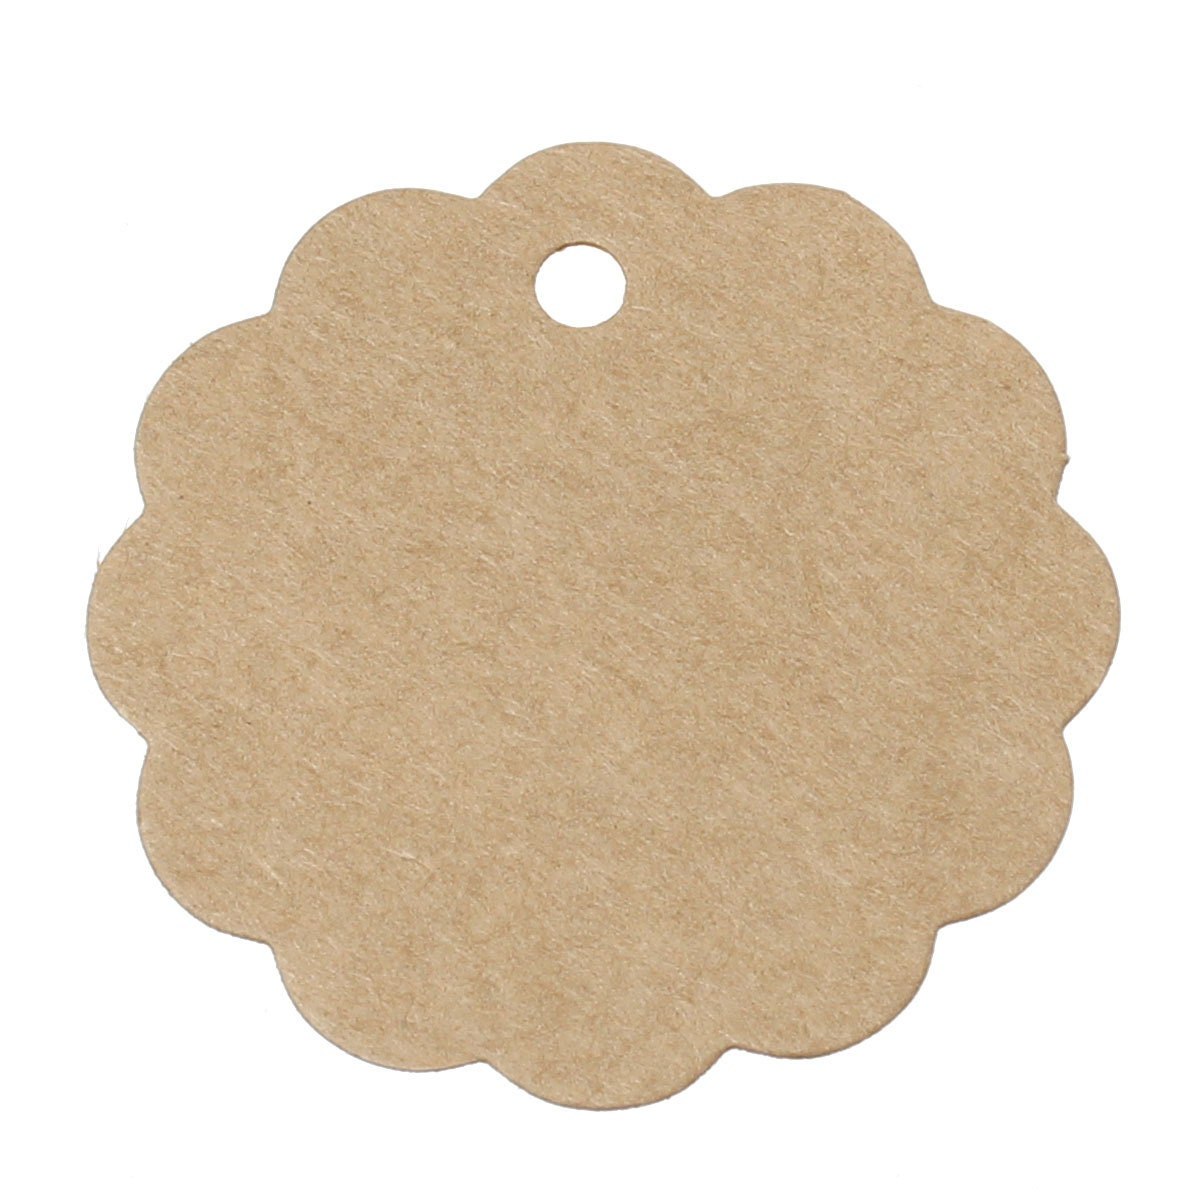 10pcs brown round paper label price tags 59x59mm packaging sold by thevioletroom jeuxipadfo Choice Image